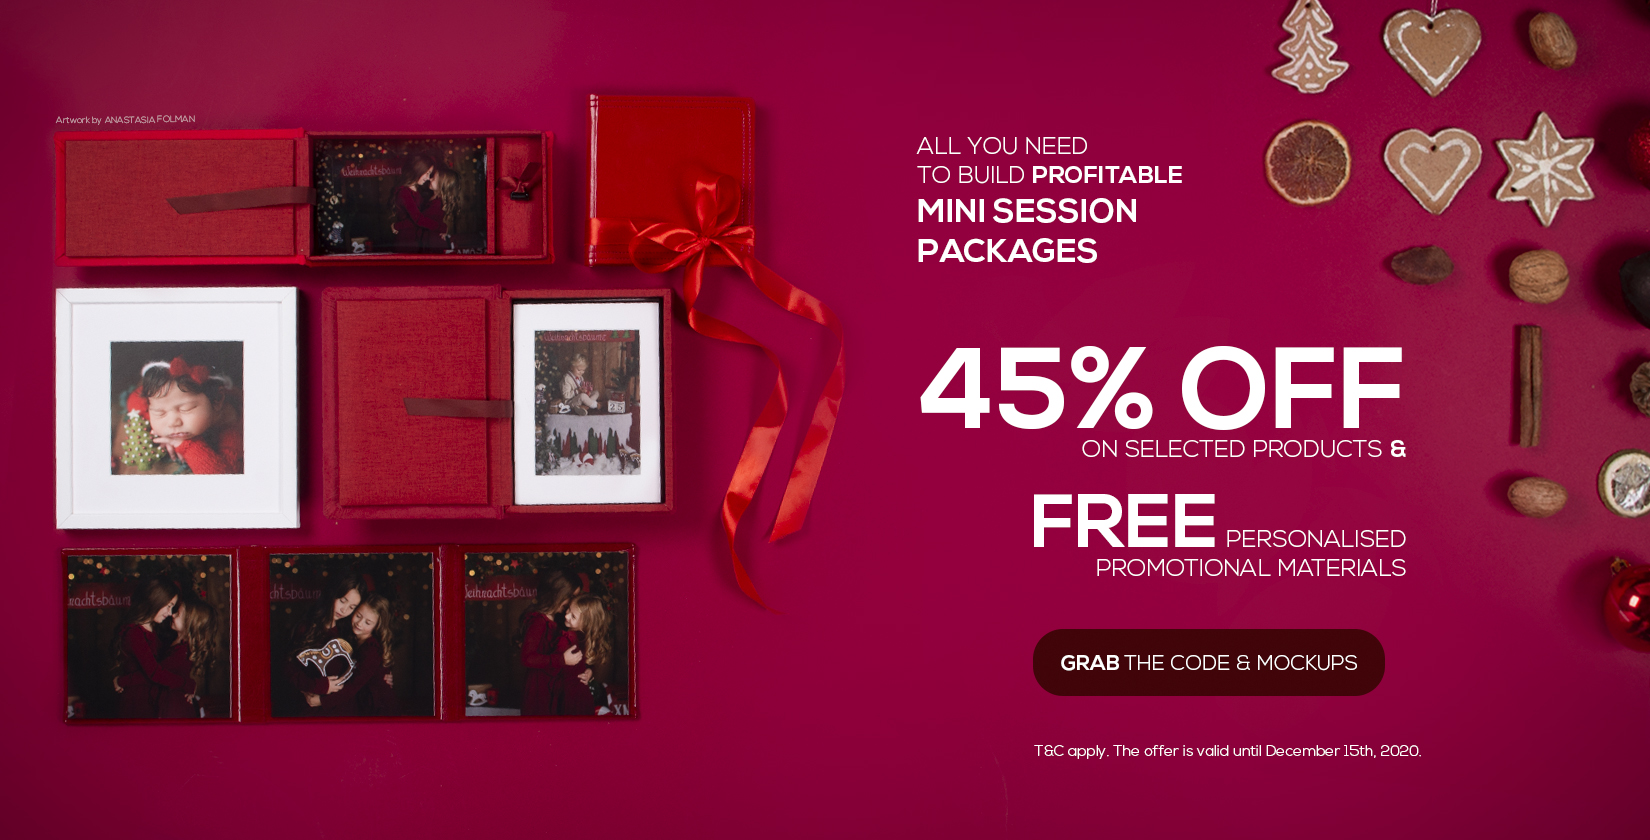 45% off best mini-session products and free promotional materials for you